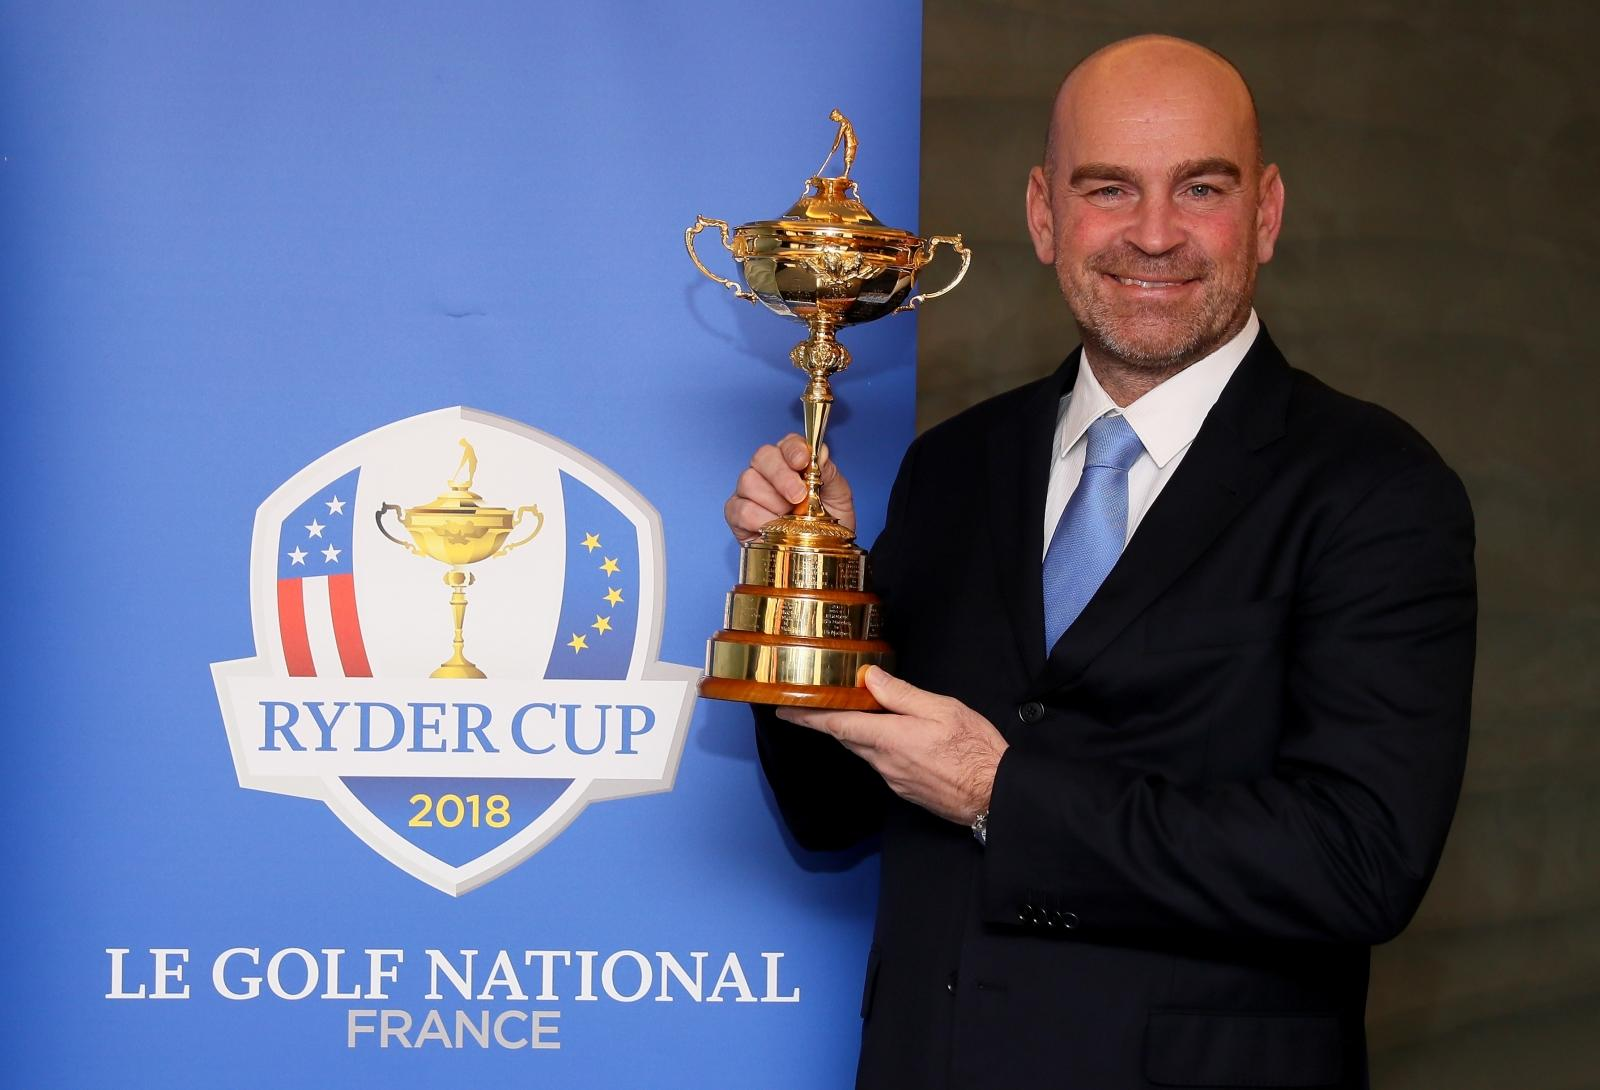 Europe to include four wild-cards in Ryder Cup 2018 team